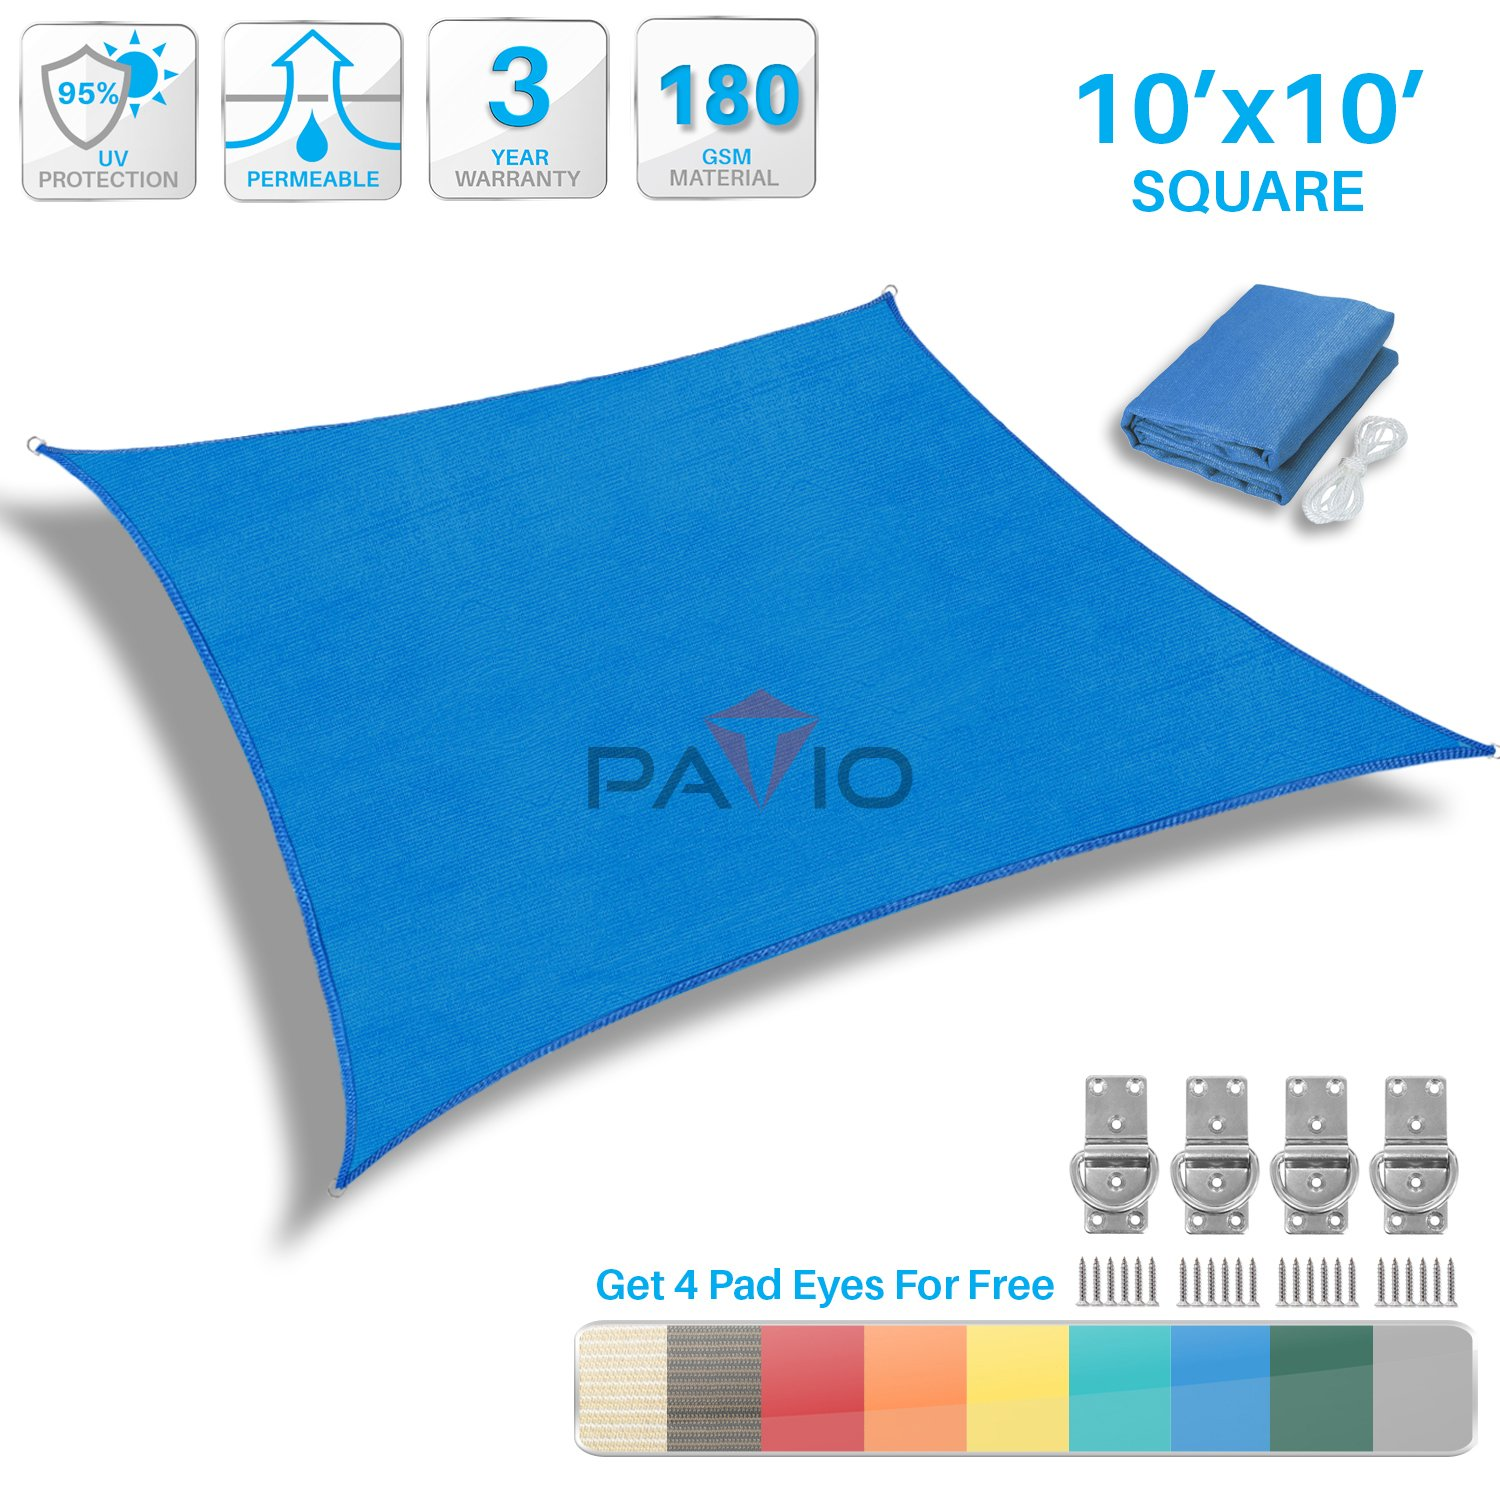 Patio Paradise 10' x 10' Blue Sun Shade Sail Square Canopy - Permeable UV Block Fabric Durable Patio Outdoor - Customized Available